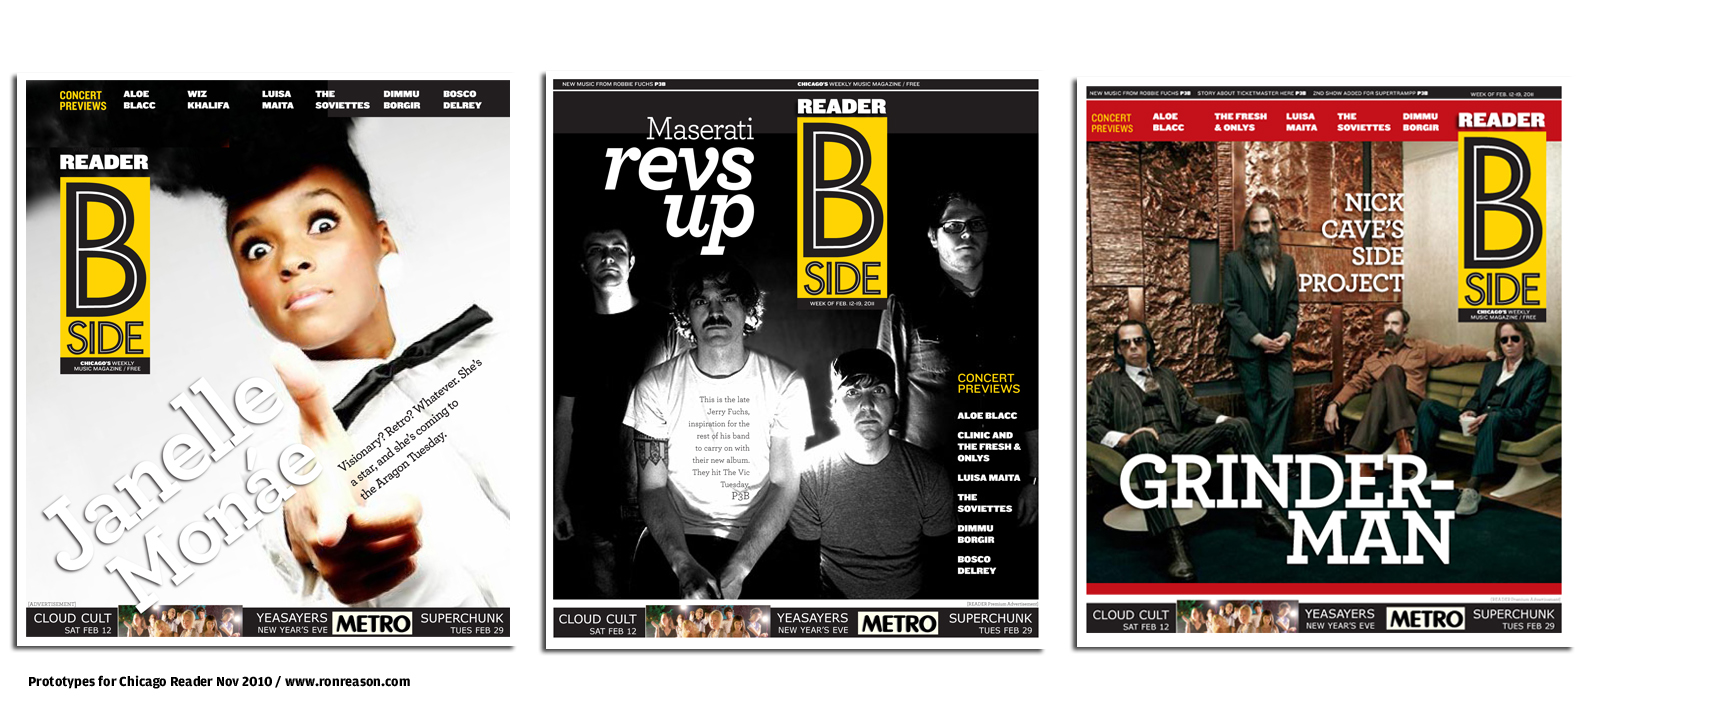 Chicago Reader newspaper redesign: Prototypes for rebranding of music section into B SIDE